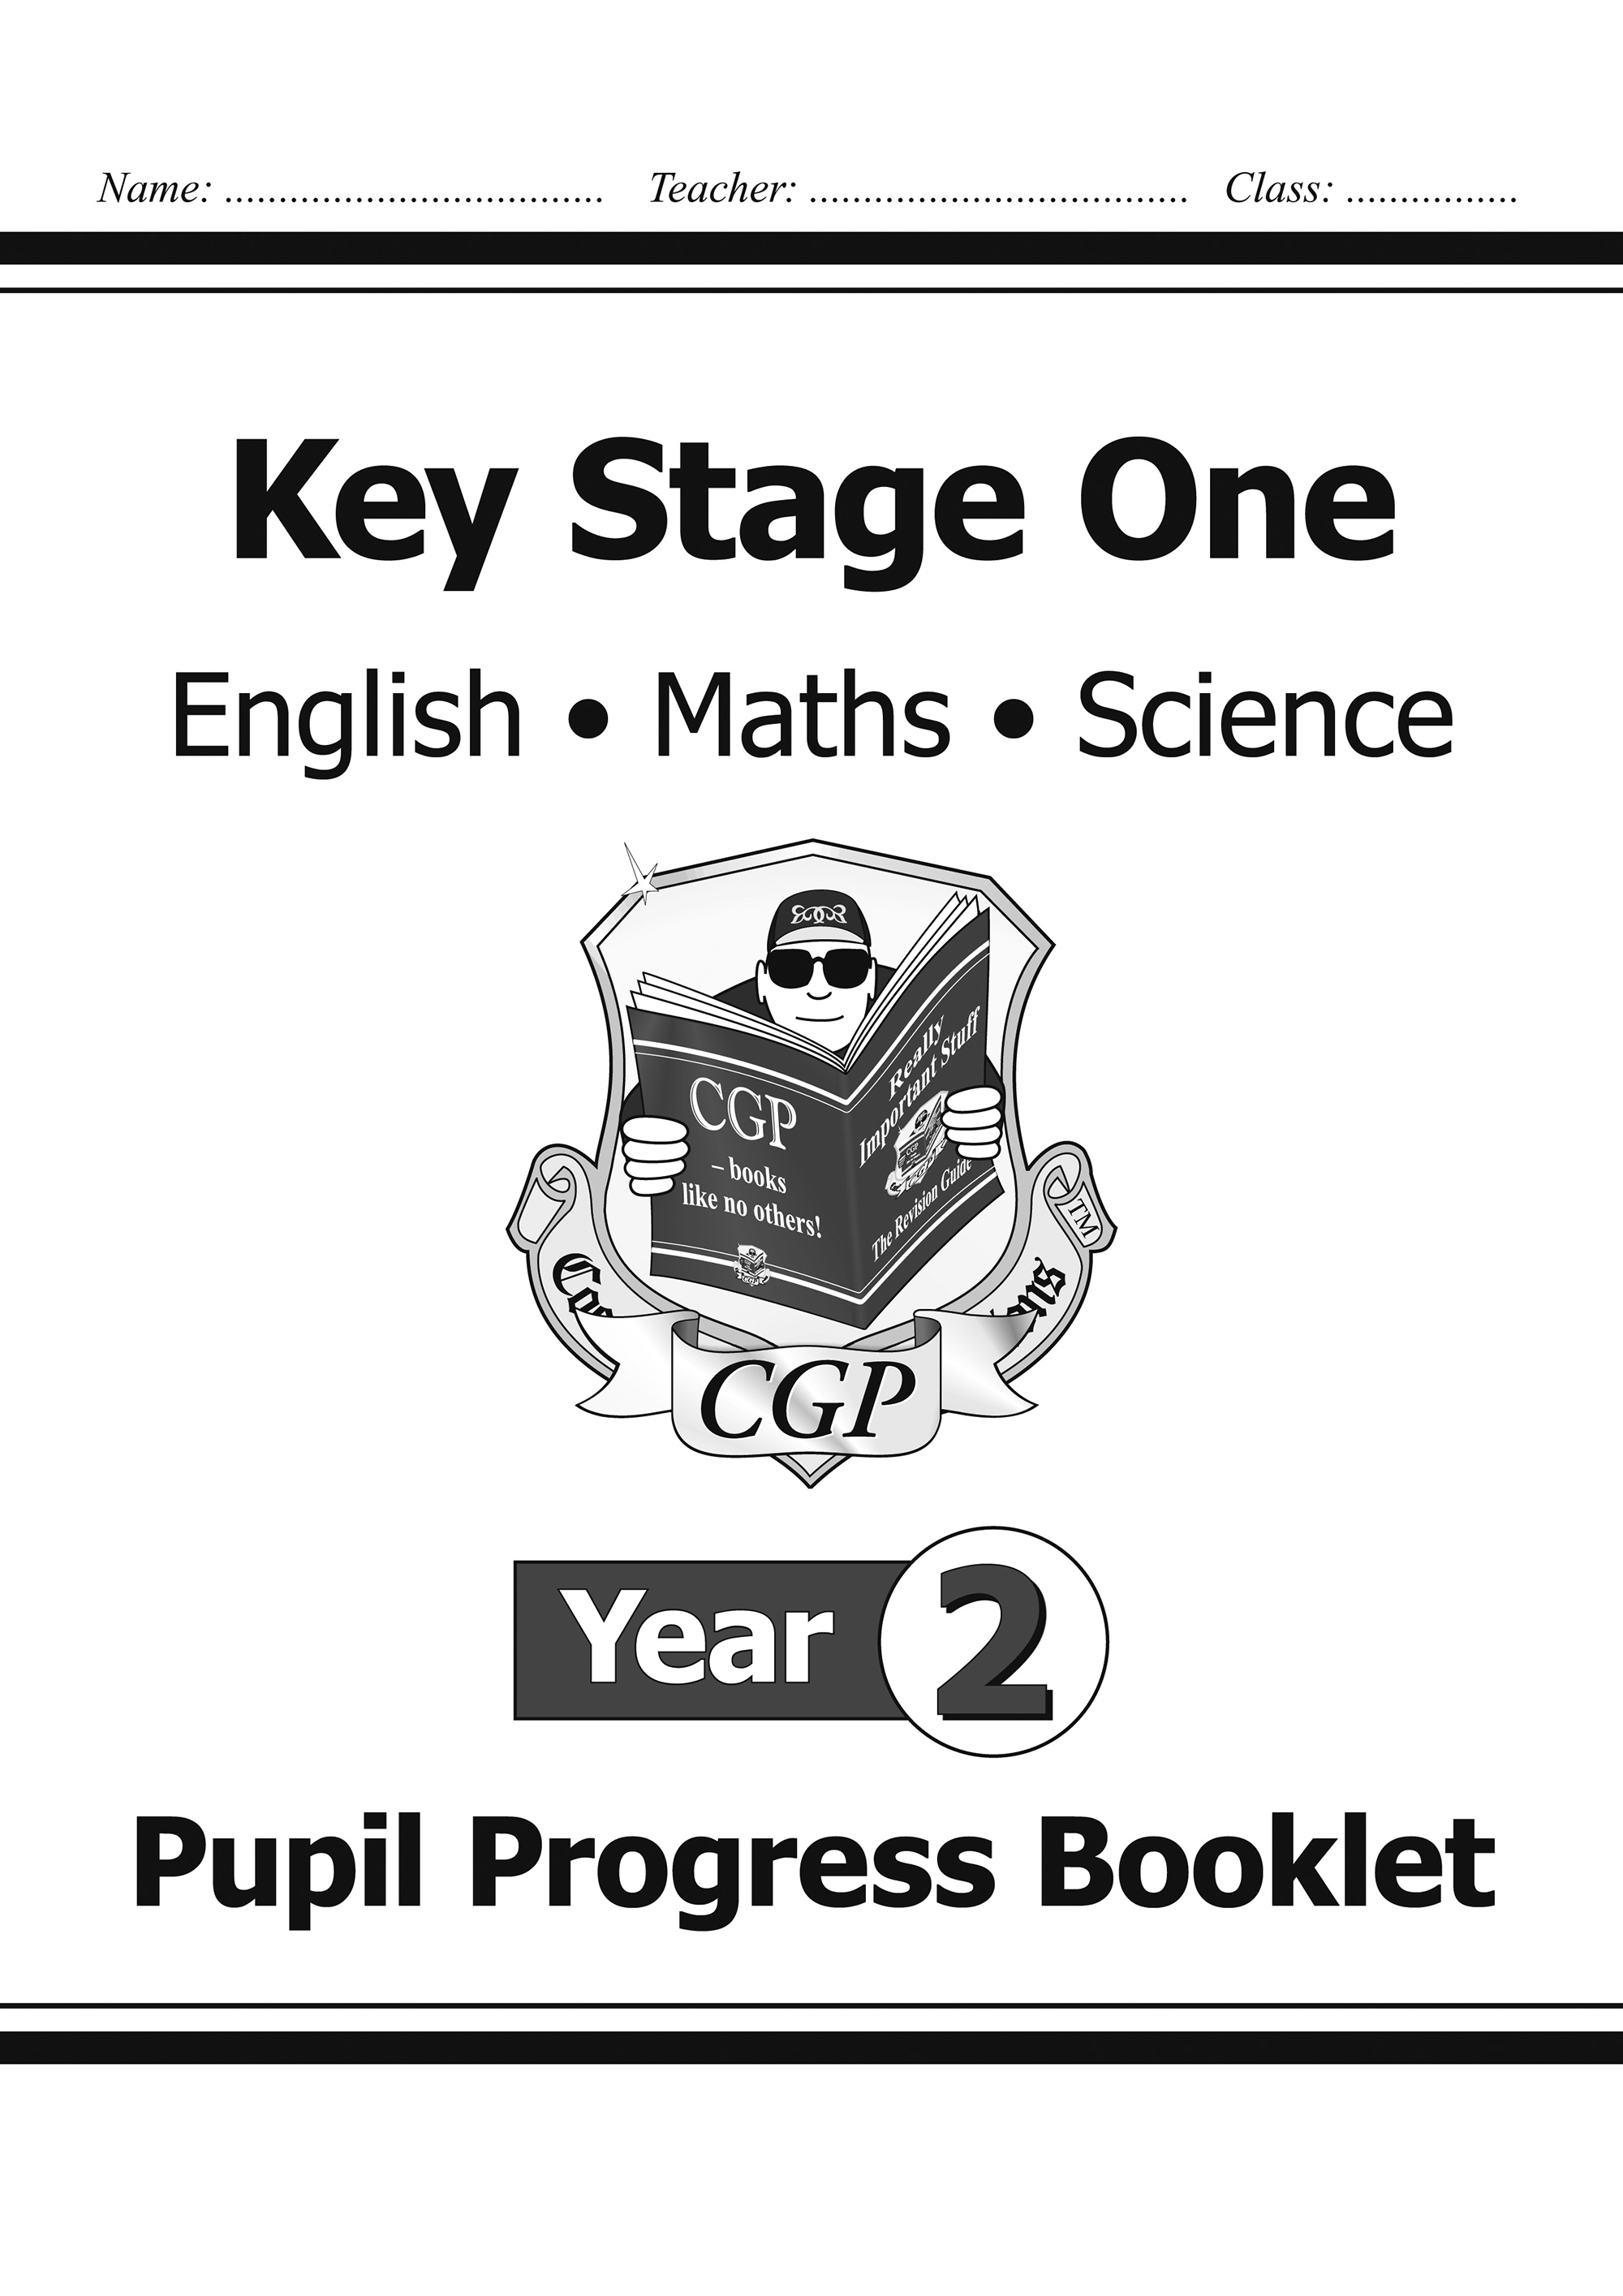 SME2P11 - KS1 Pupil Progress Booklet for English, Maths and Science - Year 2